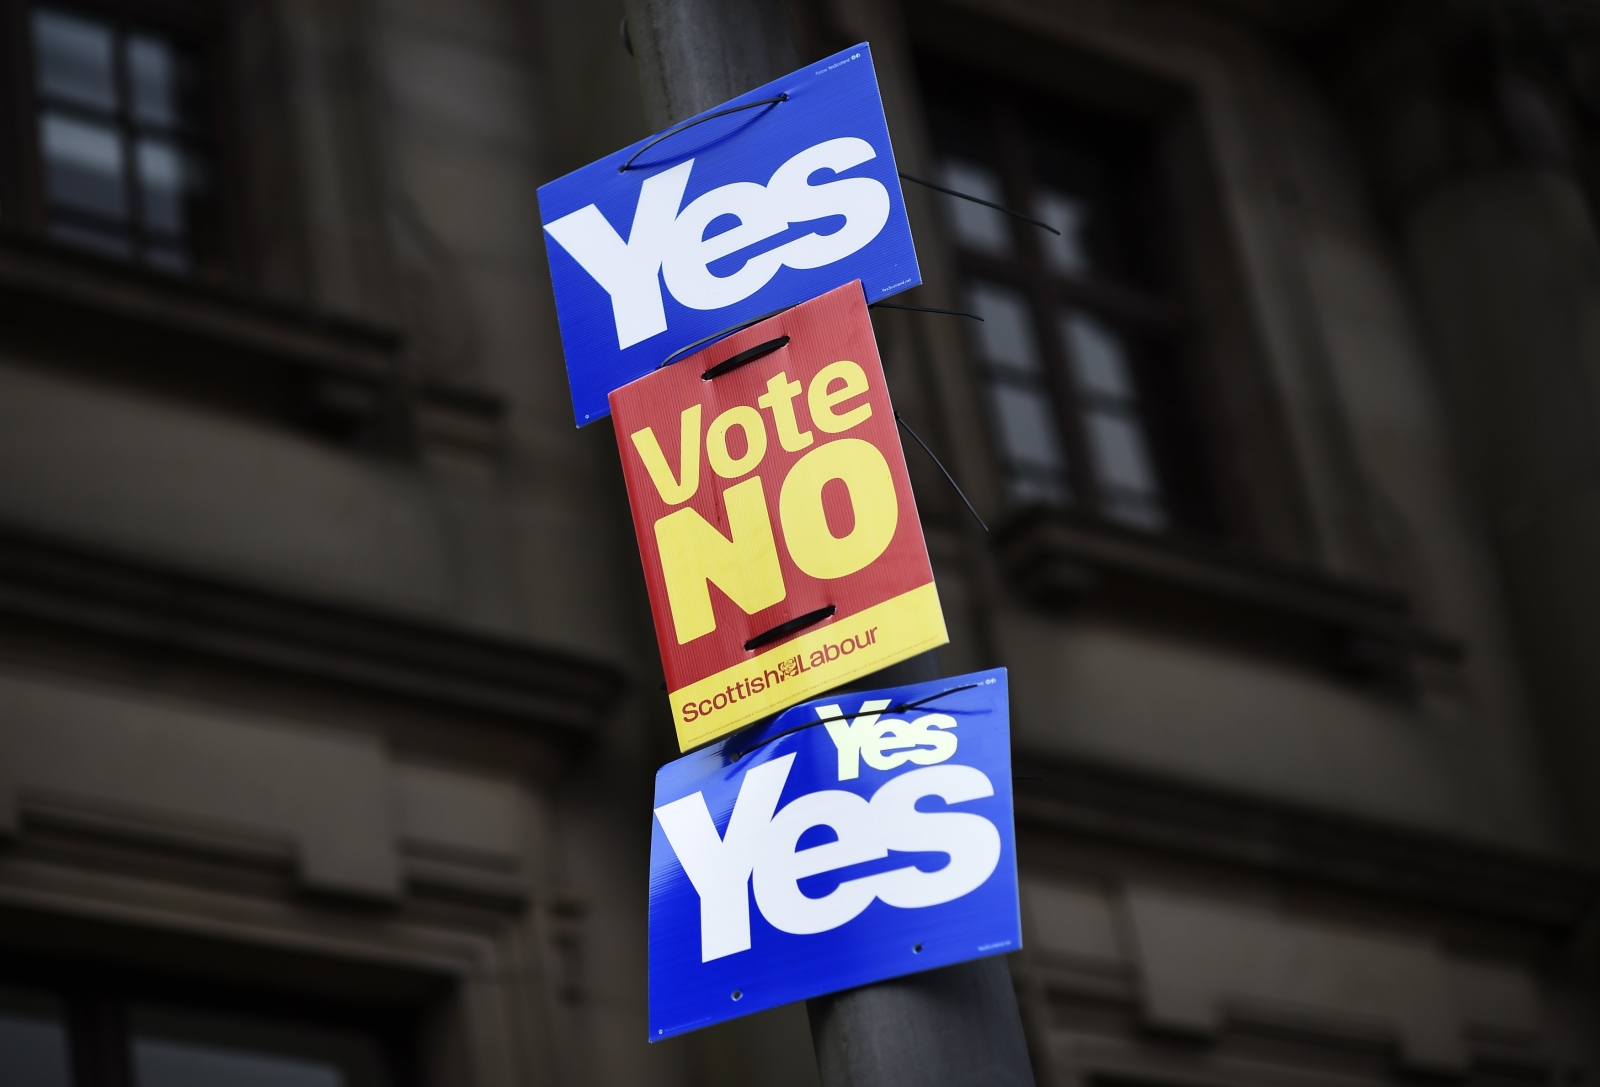 Scottish independence yes and no signs